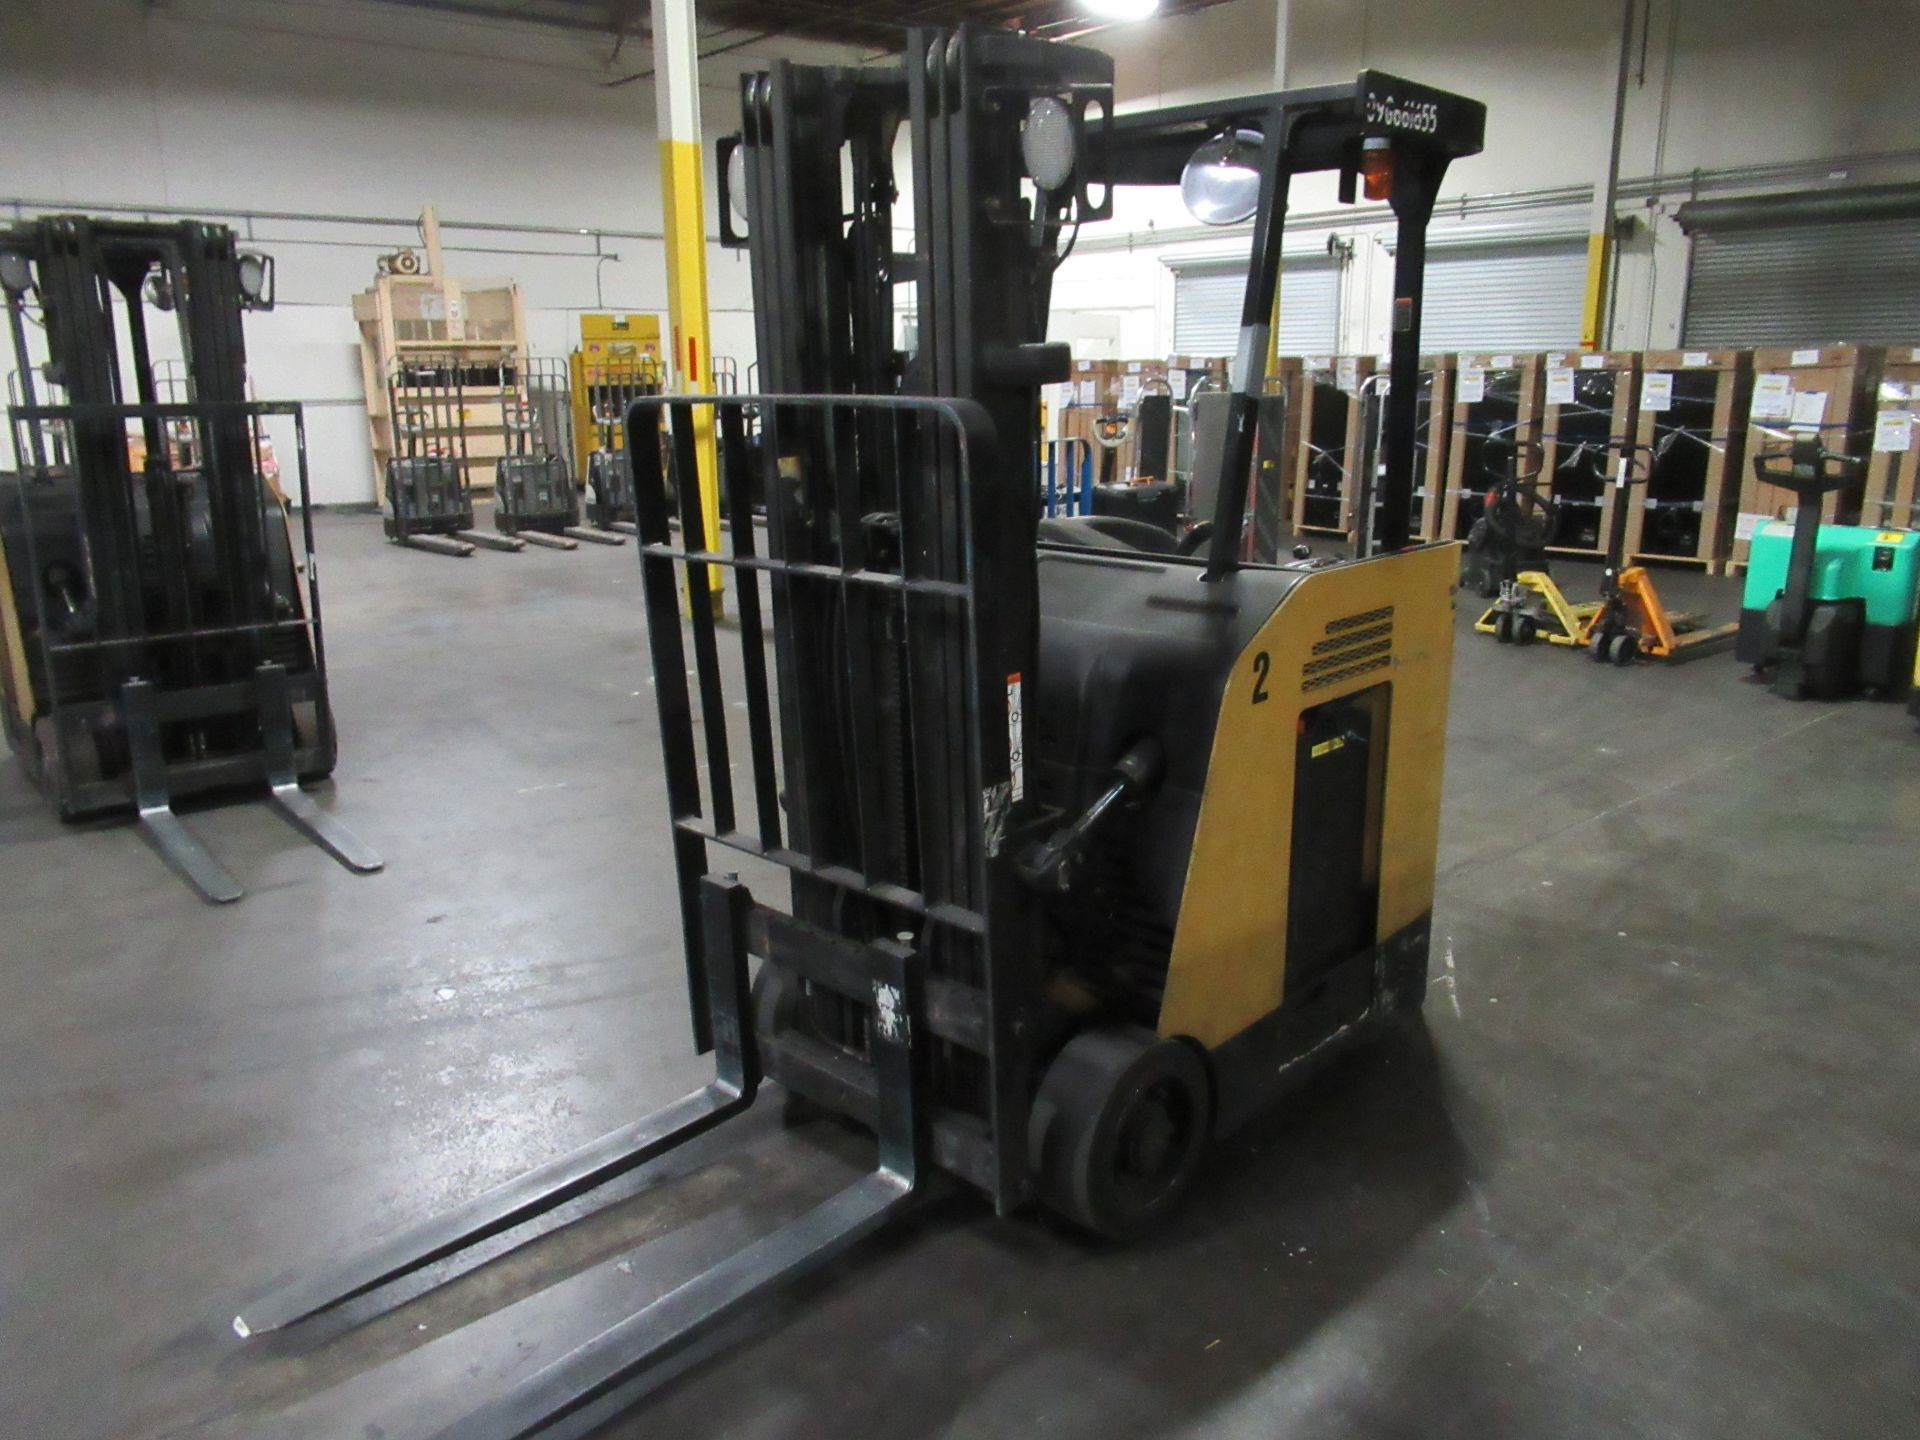 Caterpillar Stand-up Truck - Image 3 of 8